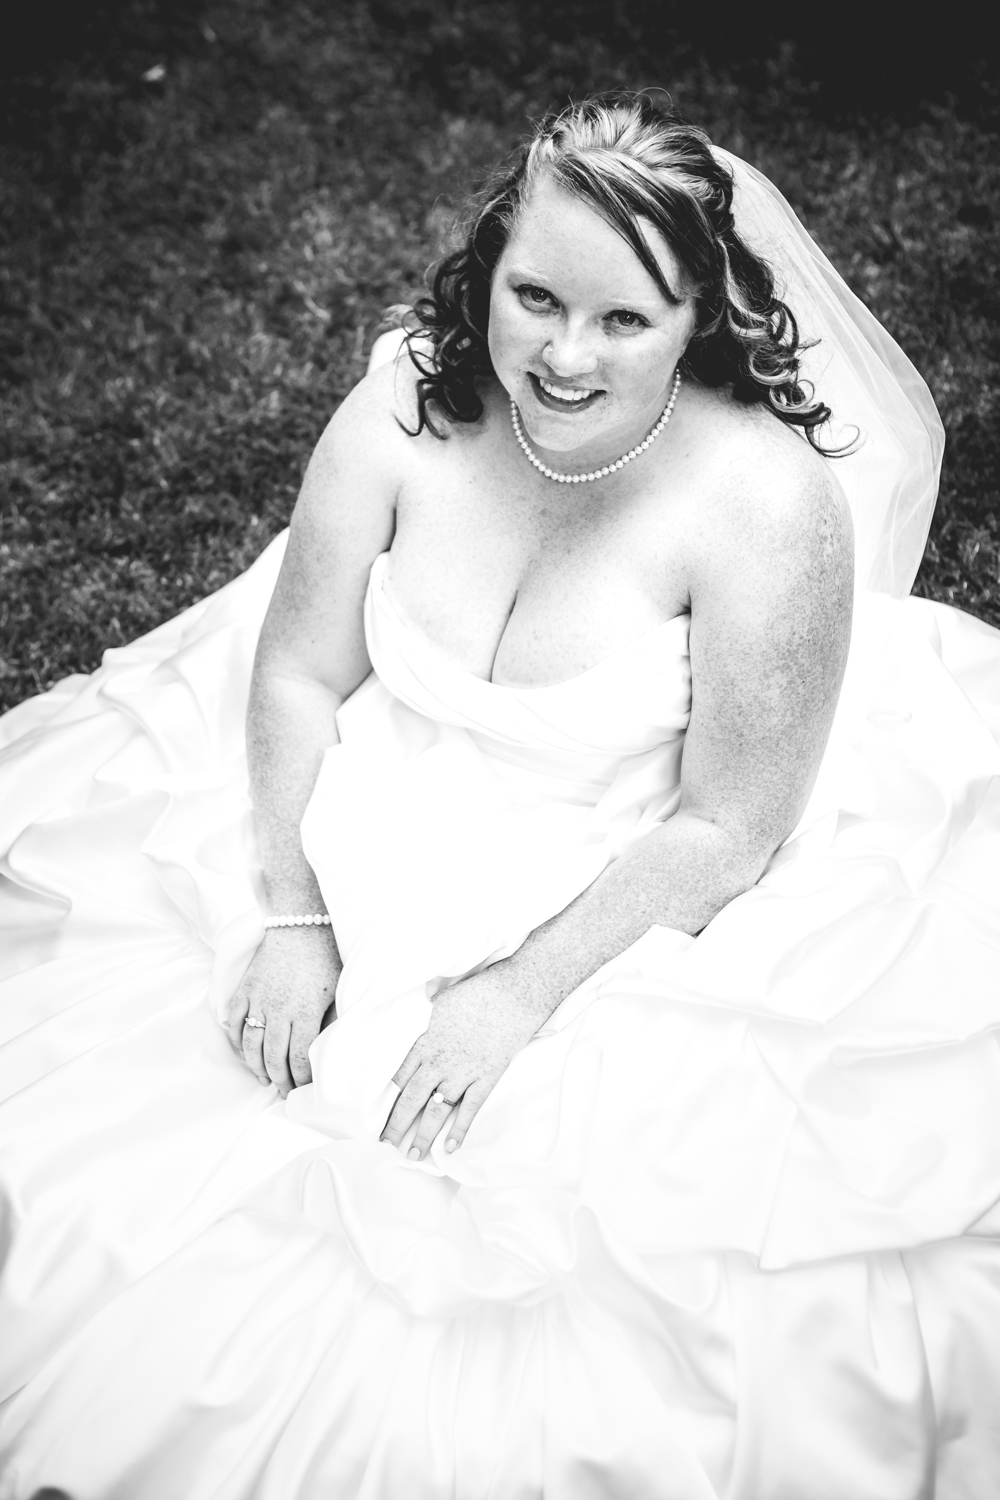 The bride taking a short break.  Photographed by JMGant Photography.